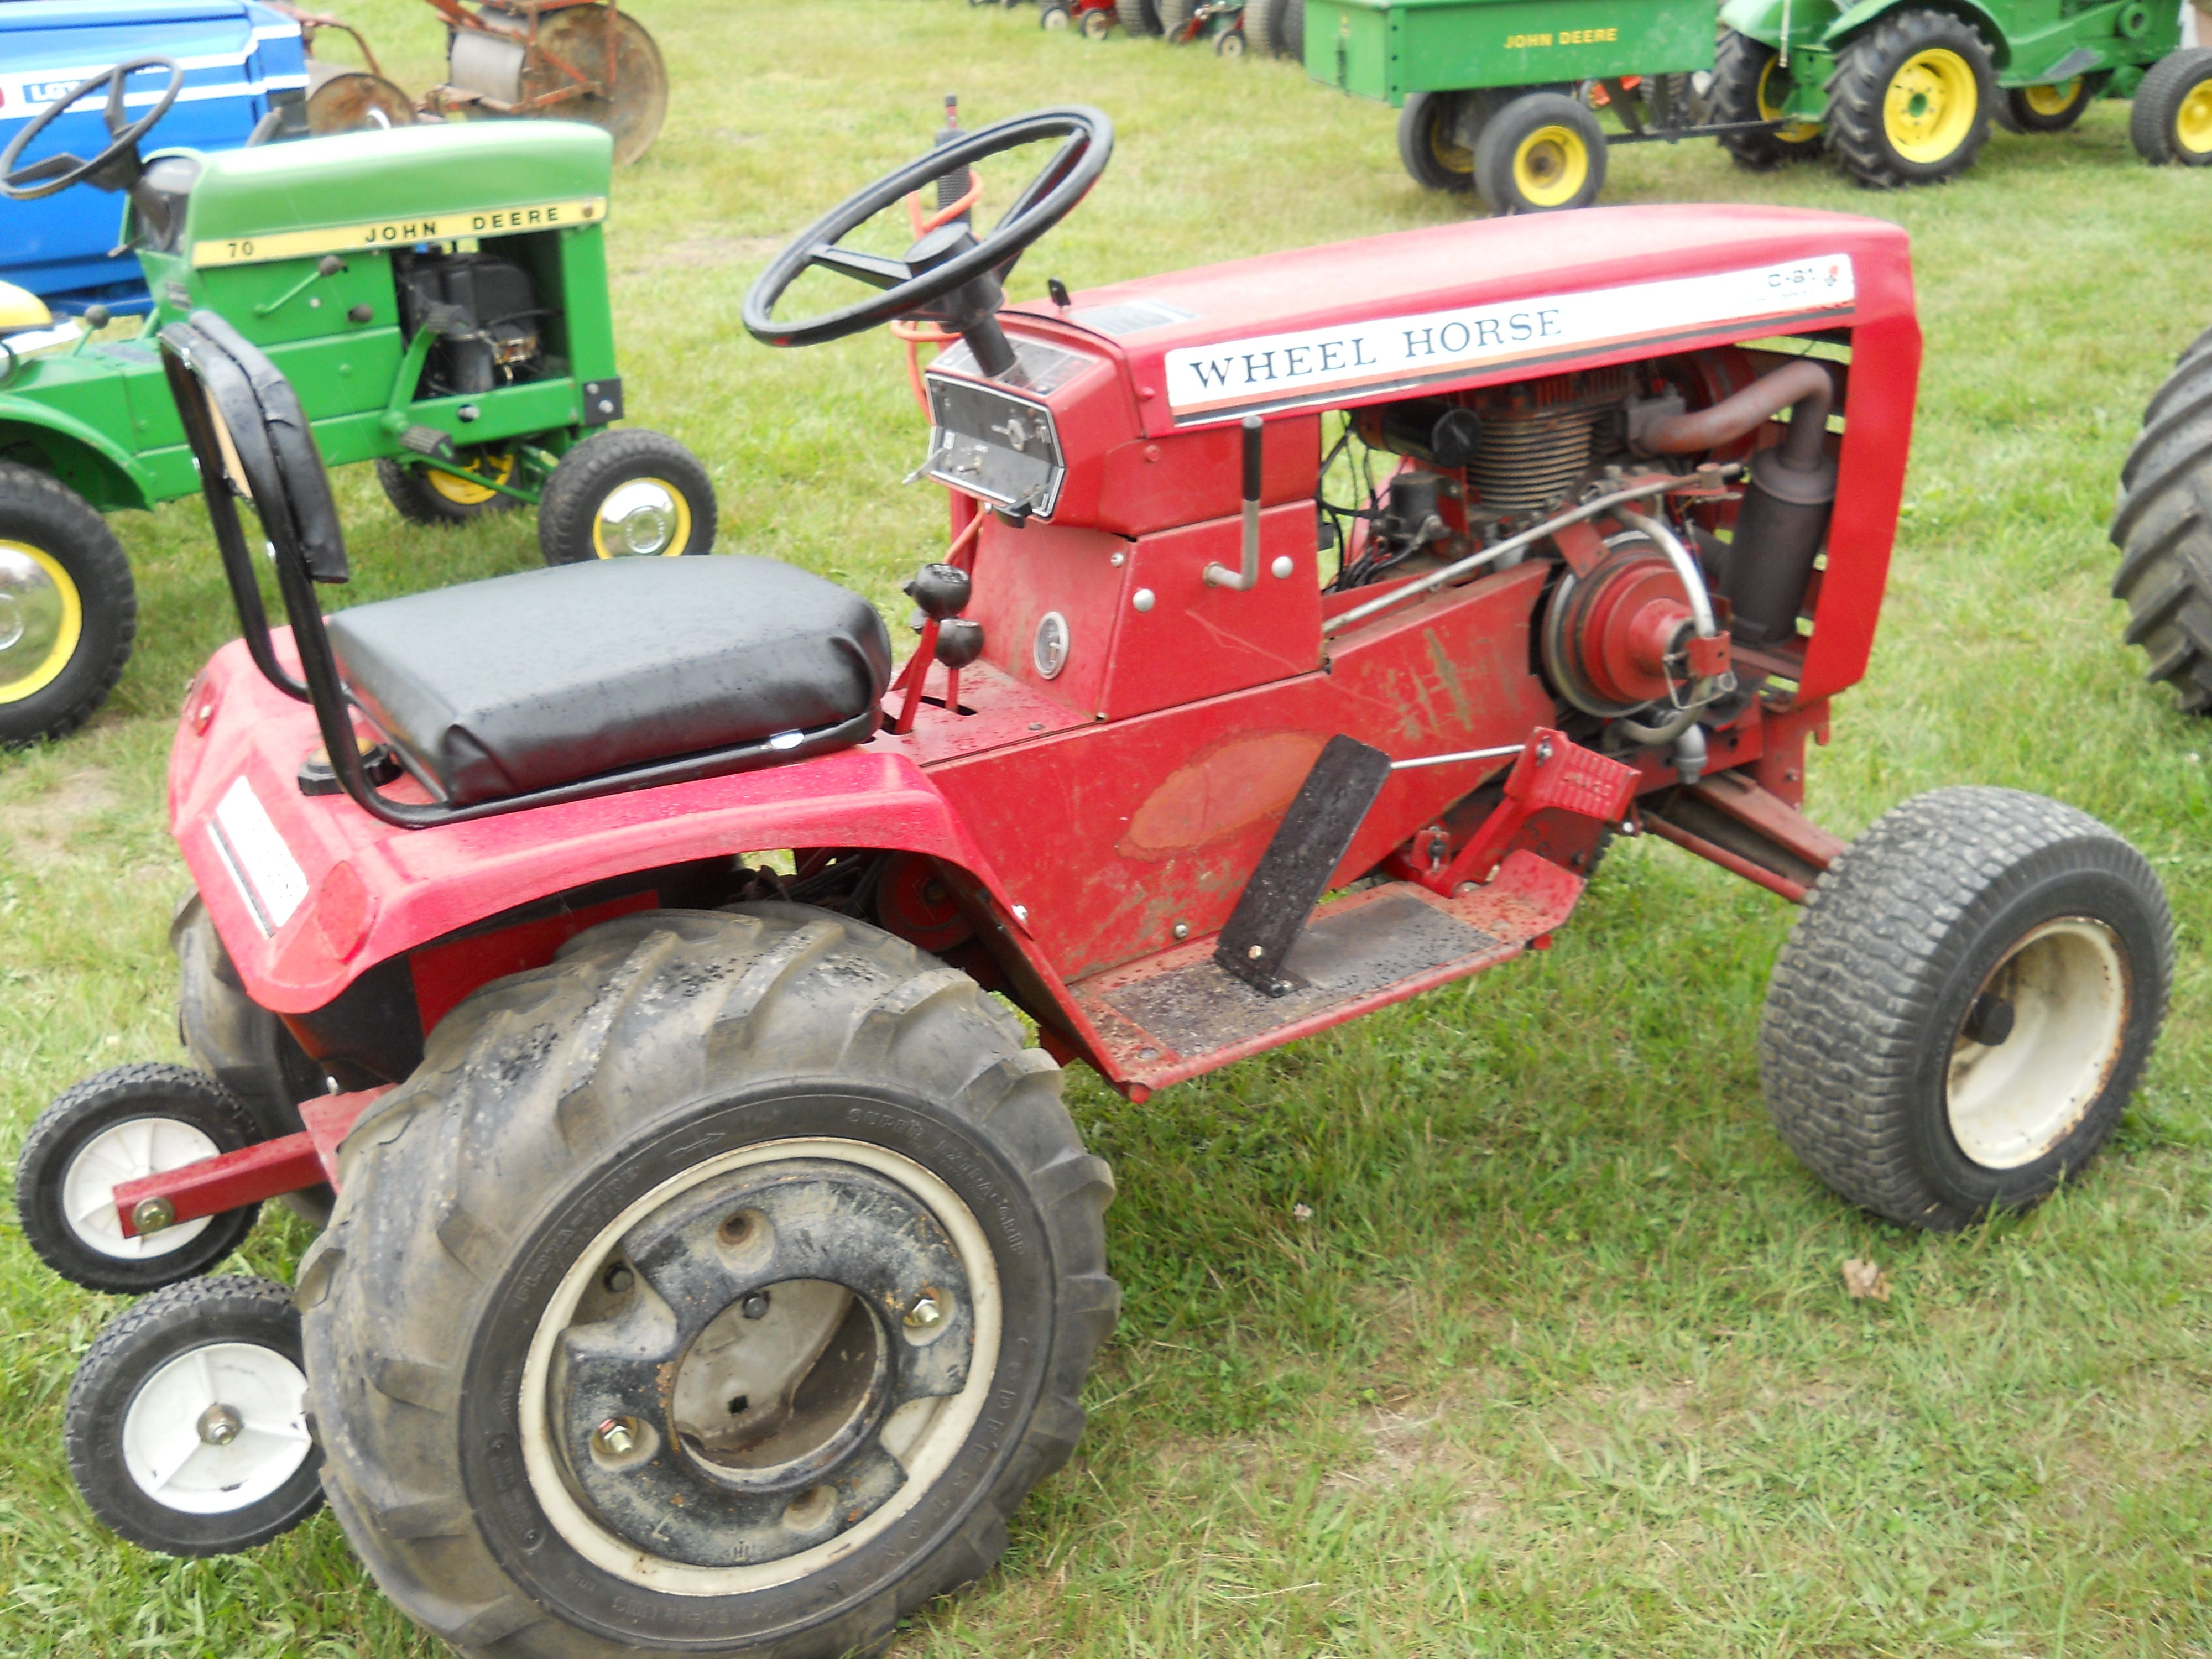 Wheel horse c 81 eight speed tractor https www youtube